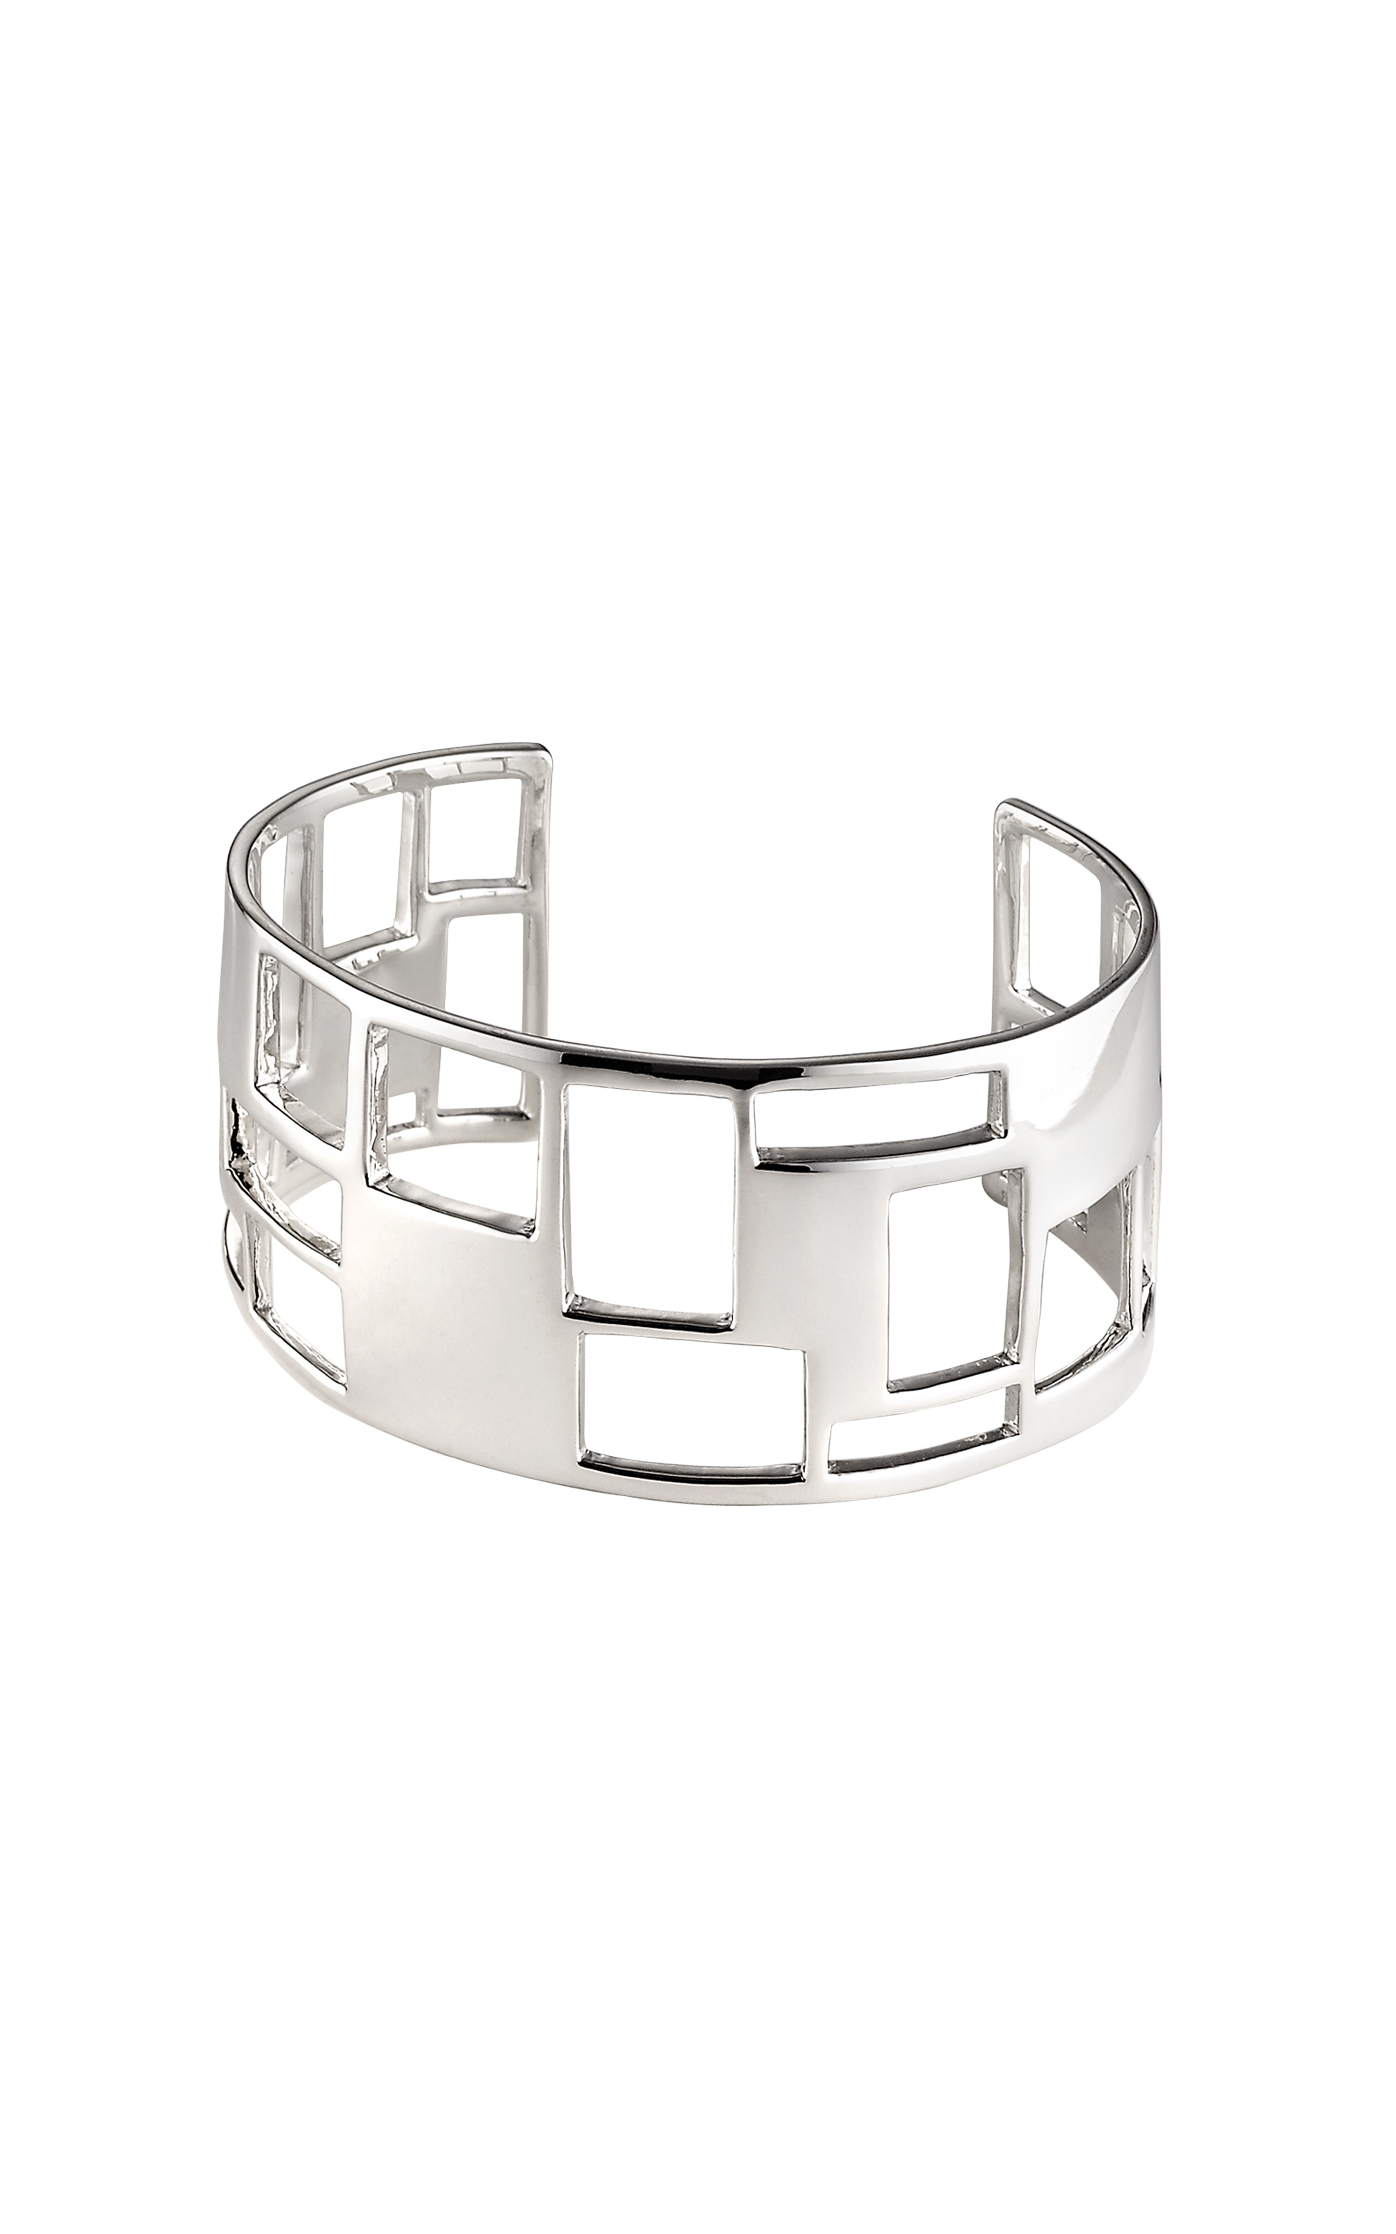 Zina Windows And Fireworks Bracelet A618 product image